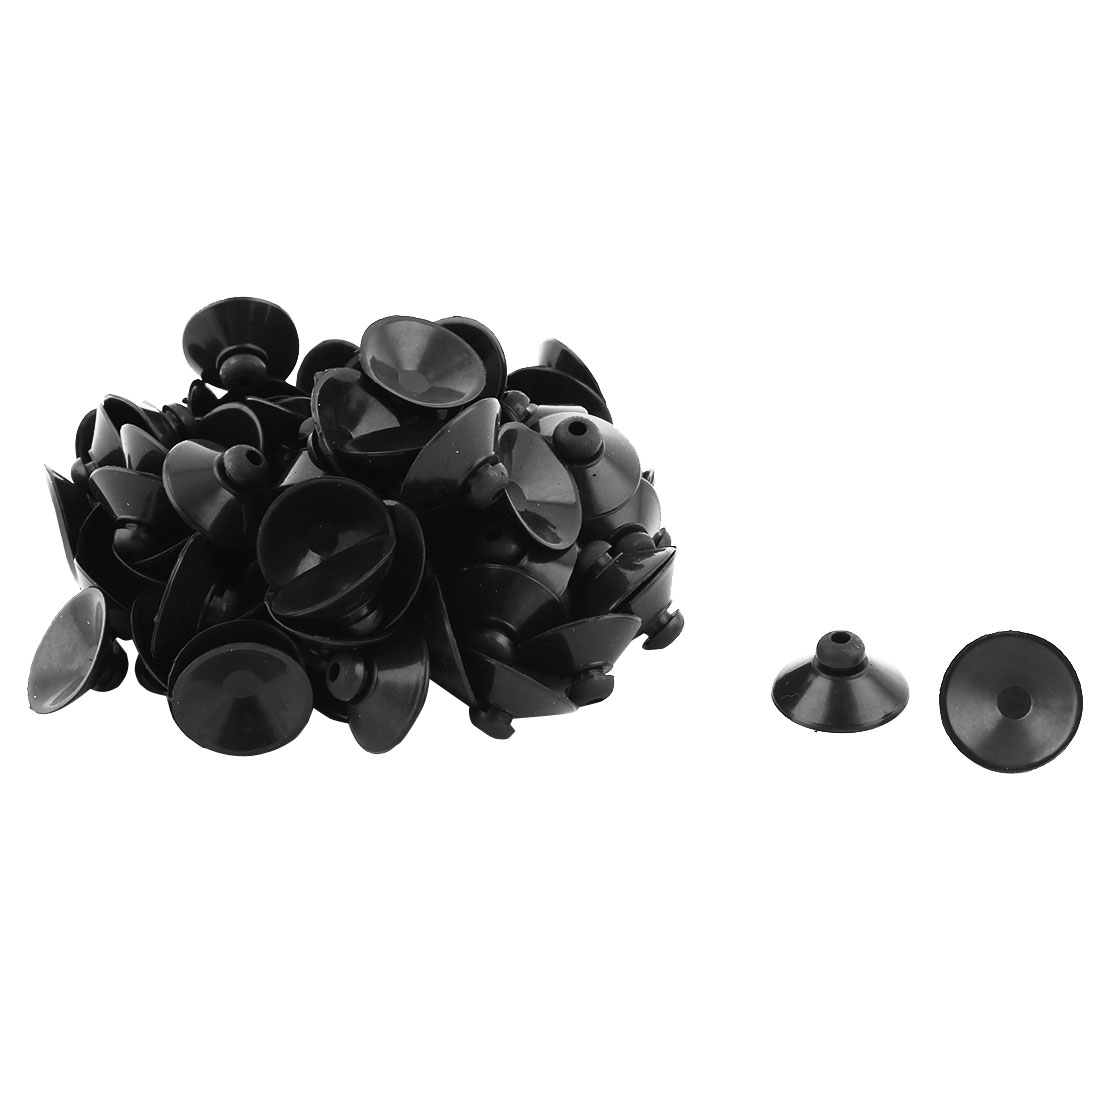 Household Rubber Round Window Glass Sucker Suction Cup Hanger Pads Black 90 Pcs